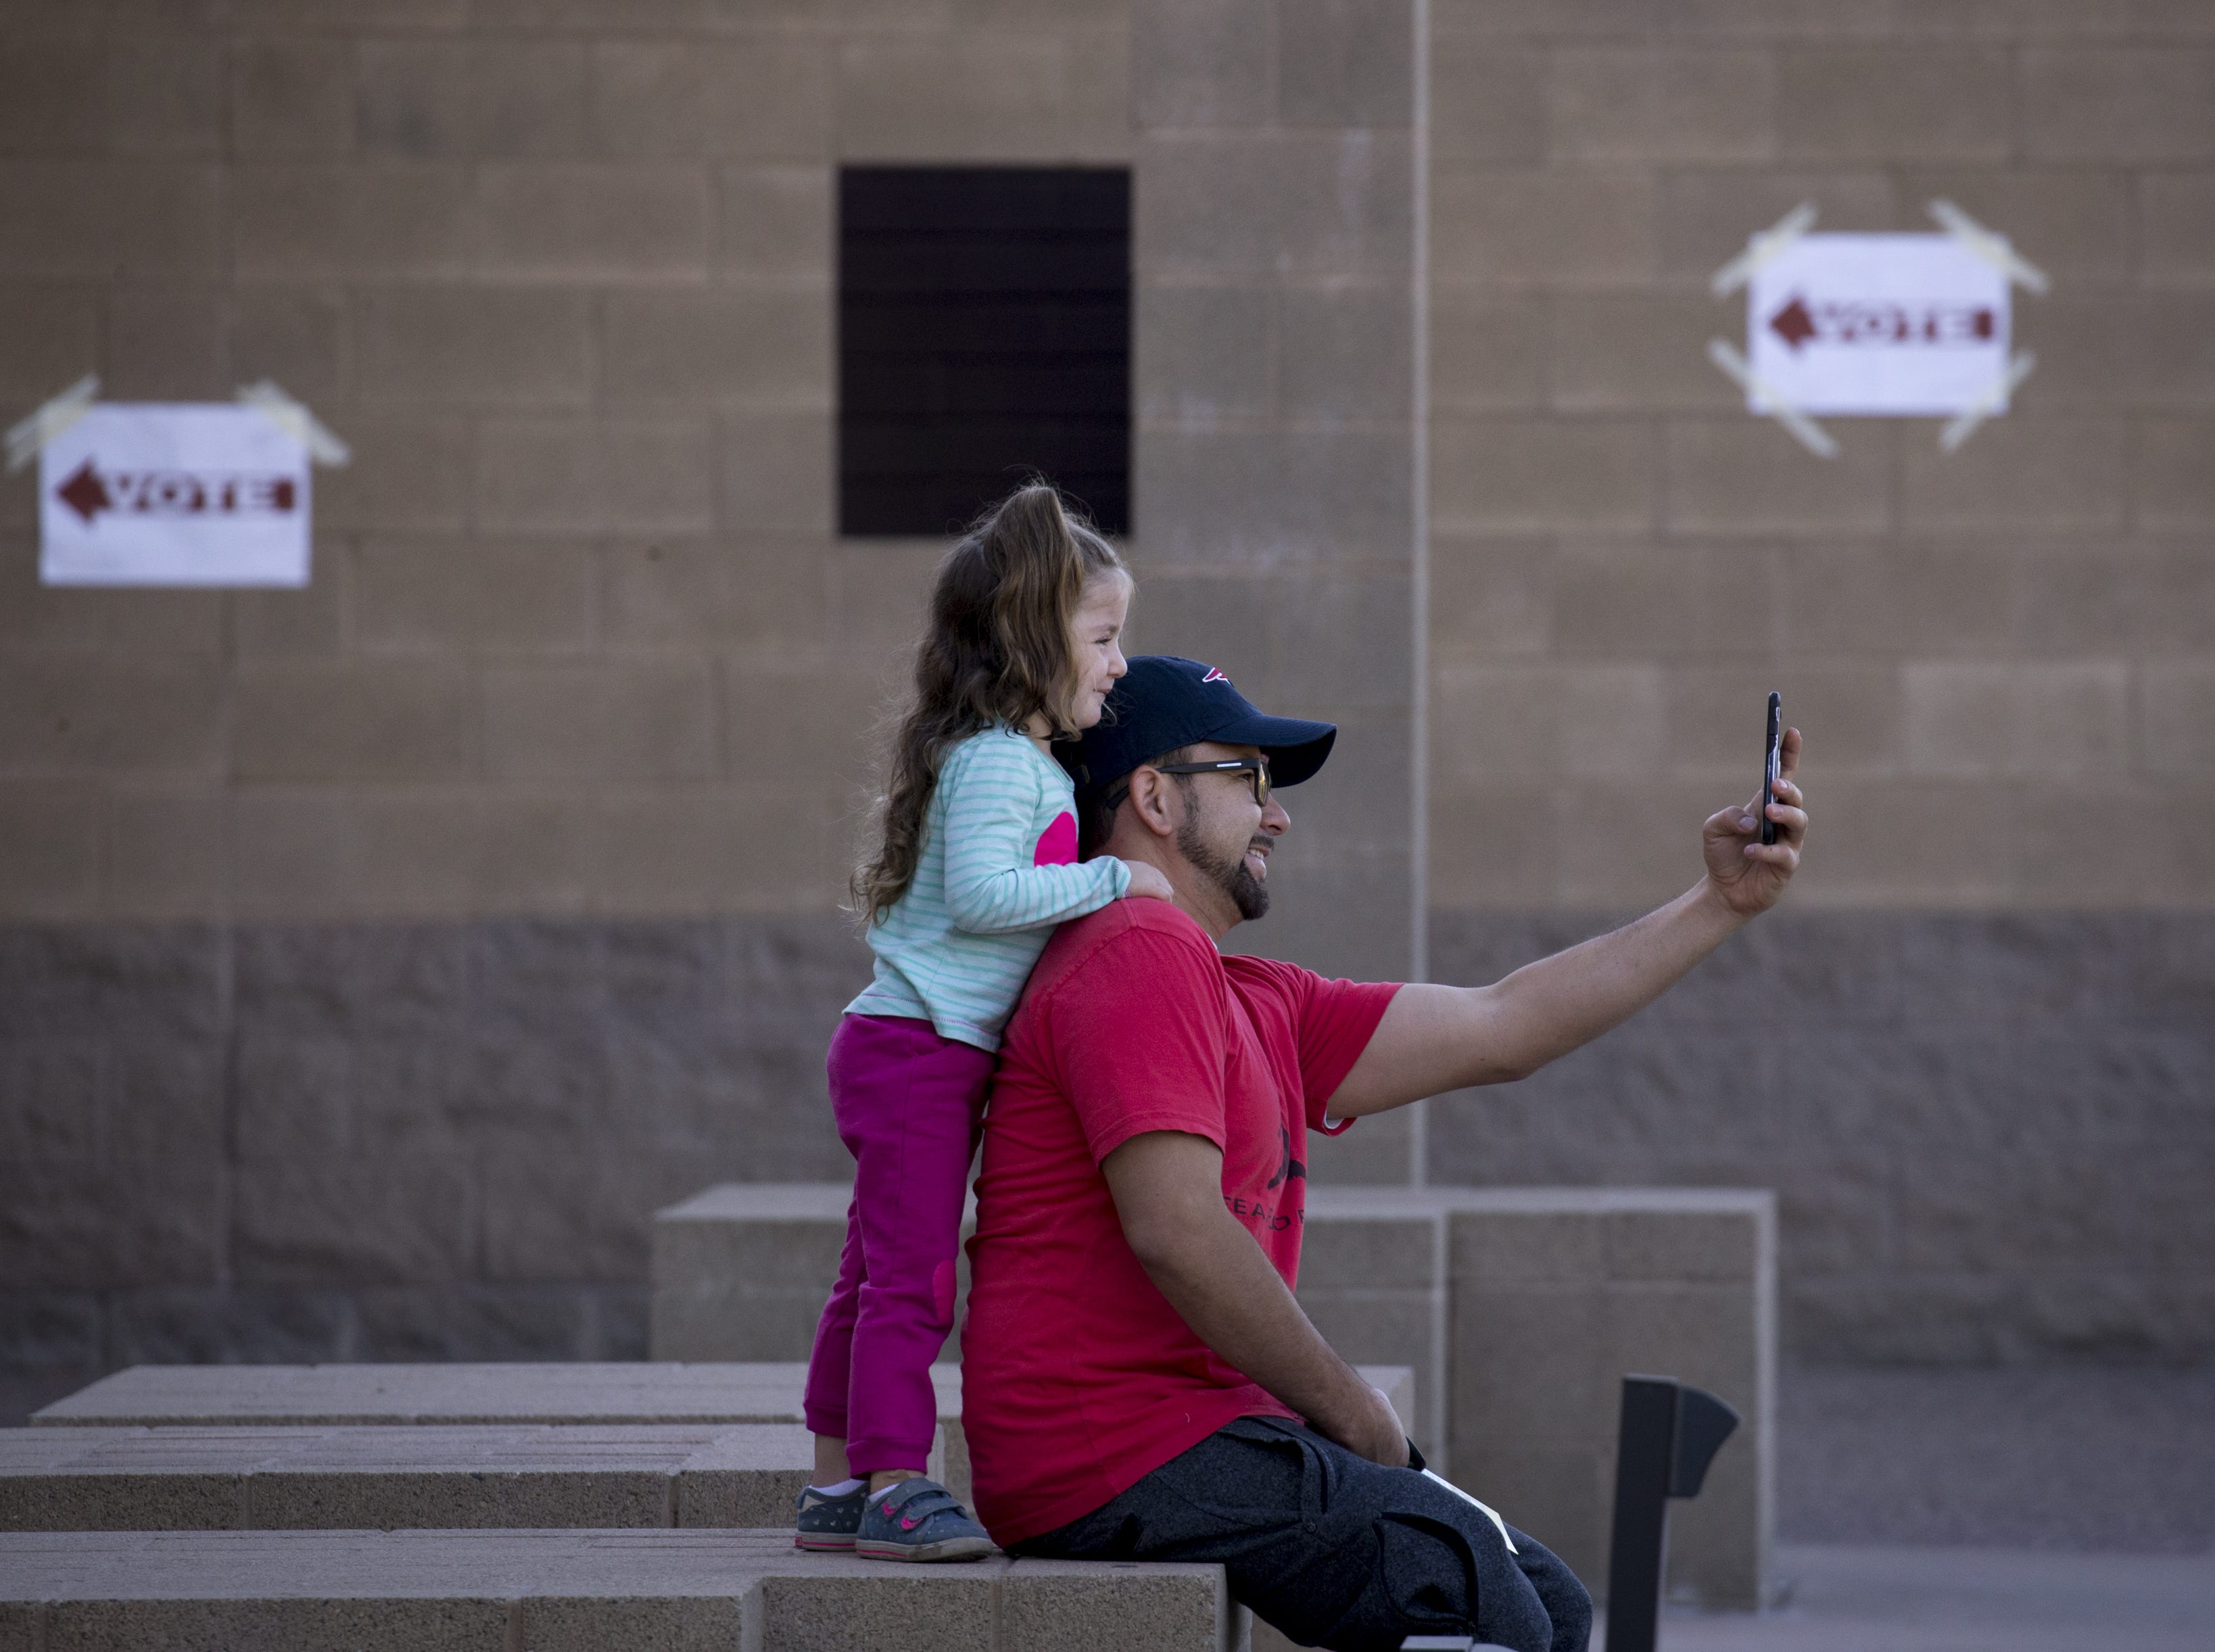 Michael Abril takes a selfie with his daughter, Hazel Abril, 3, before they go in for him to vote, Nov. 6, 2018, Glendale Elementary School District, 7301 N. 58th Ave. in Glendale.